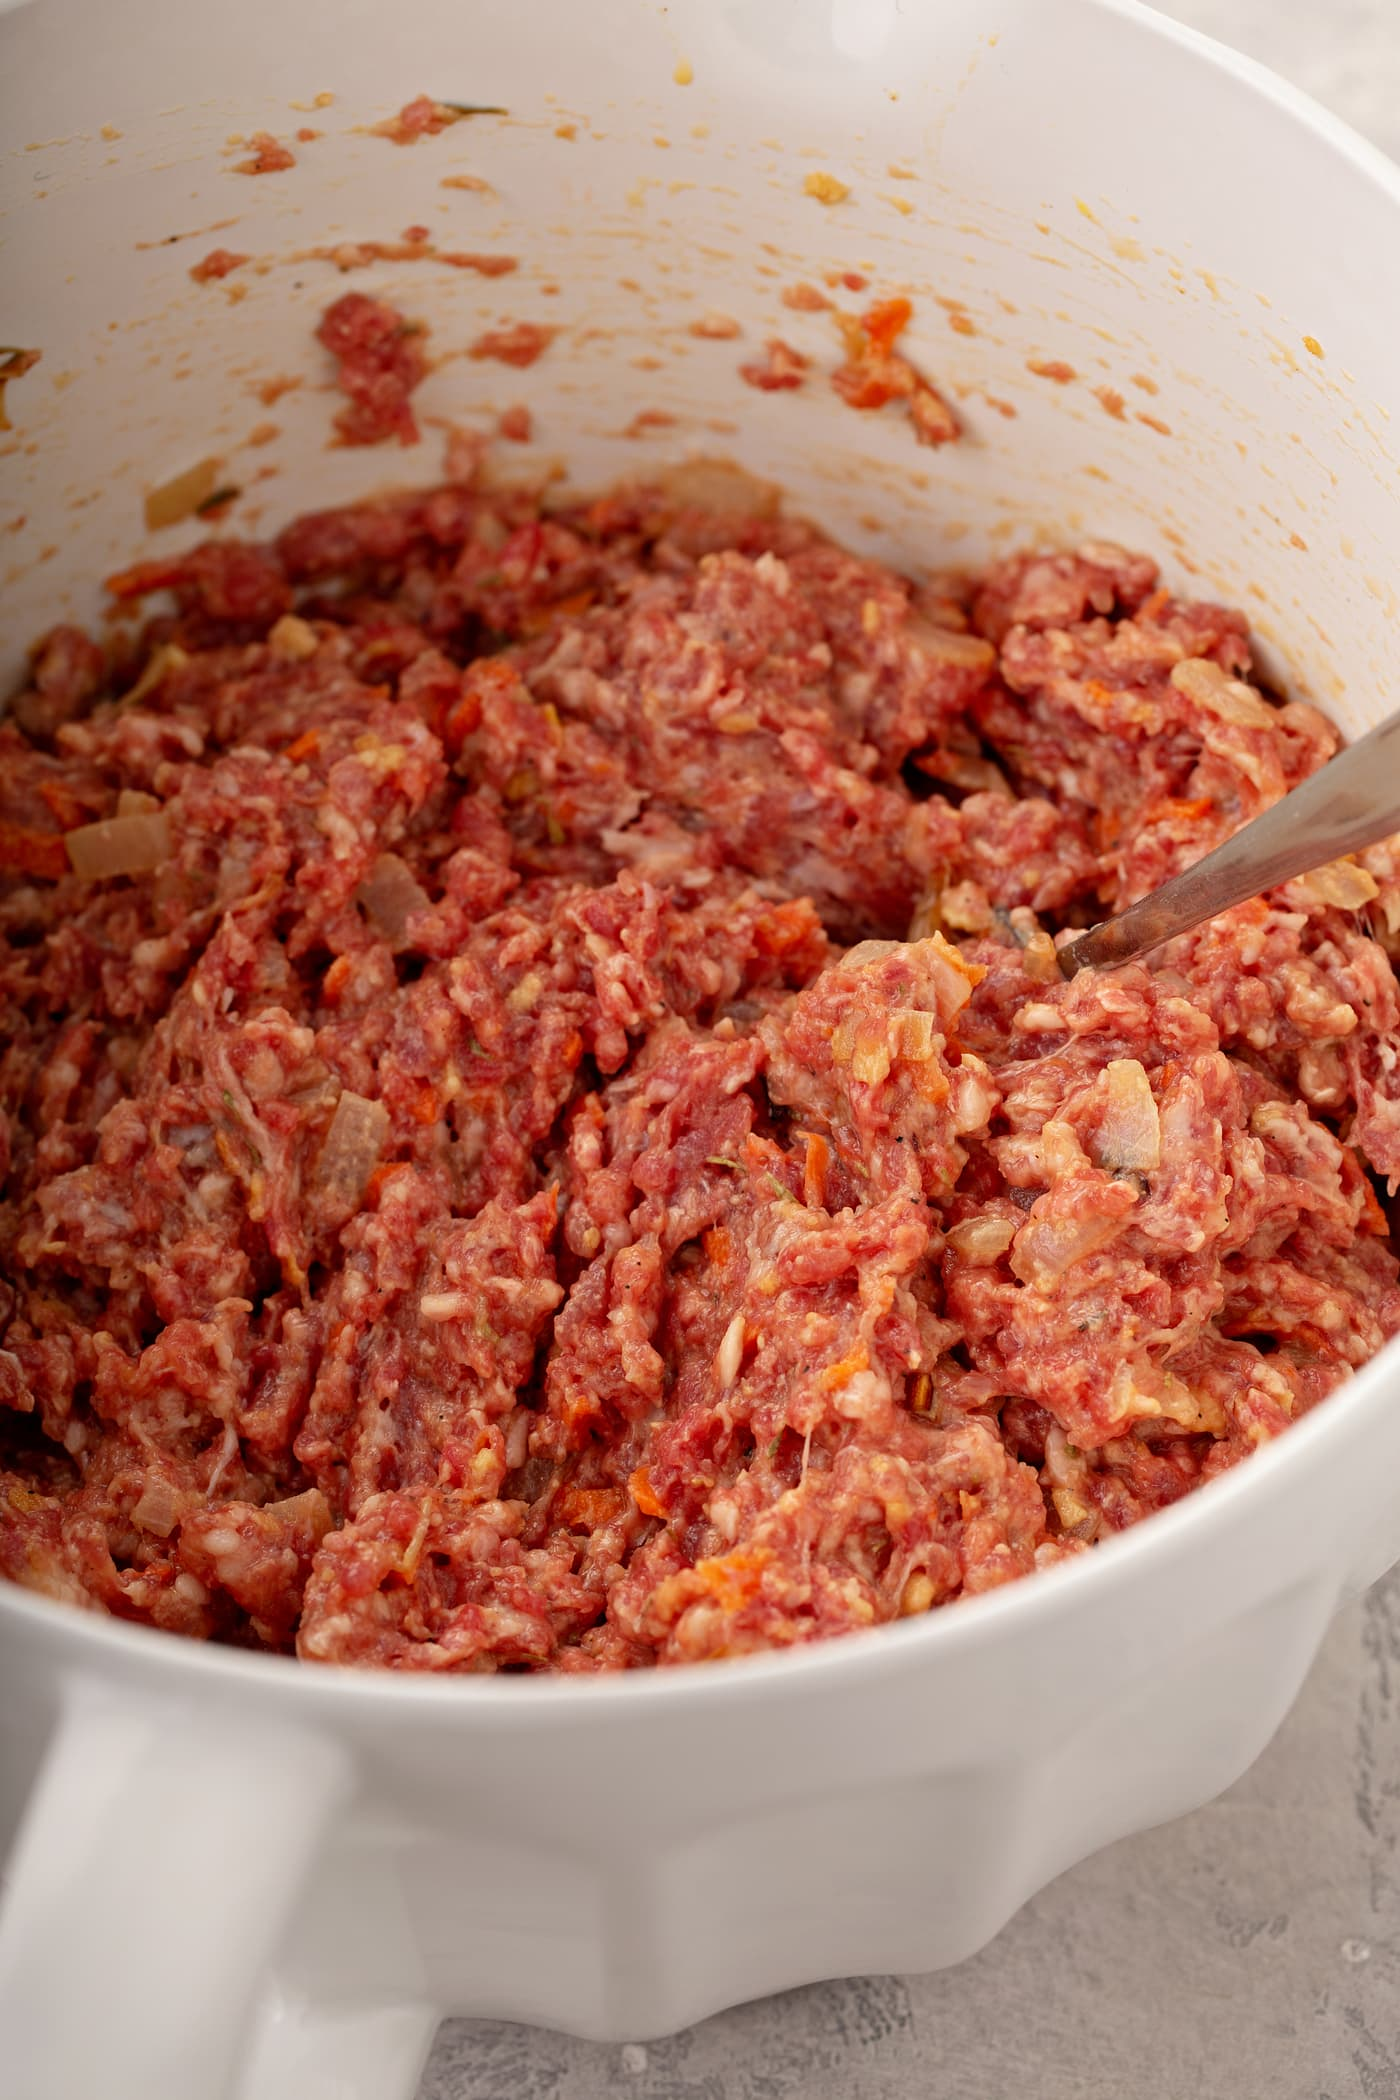 A bowl filled with ground meat. A spoon is in the meat.